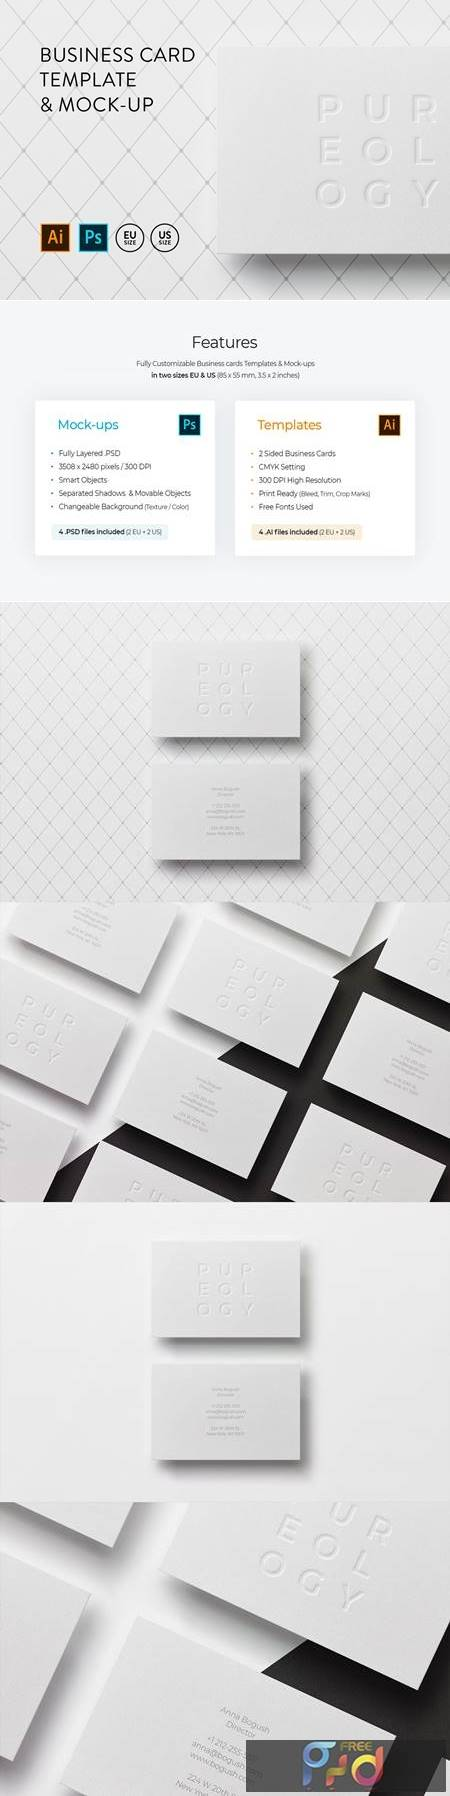 Business card Template & Mock-up #4 1